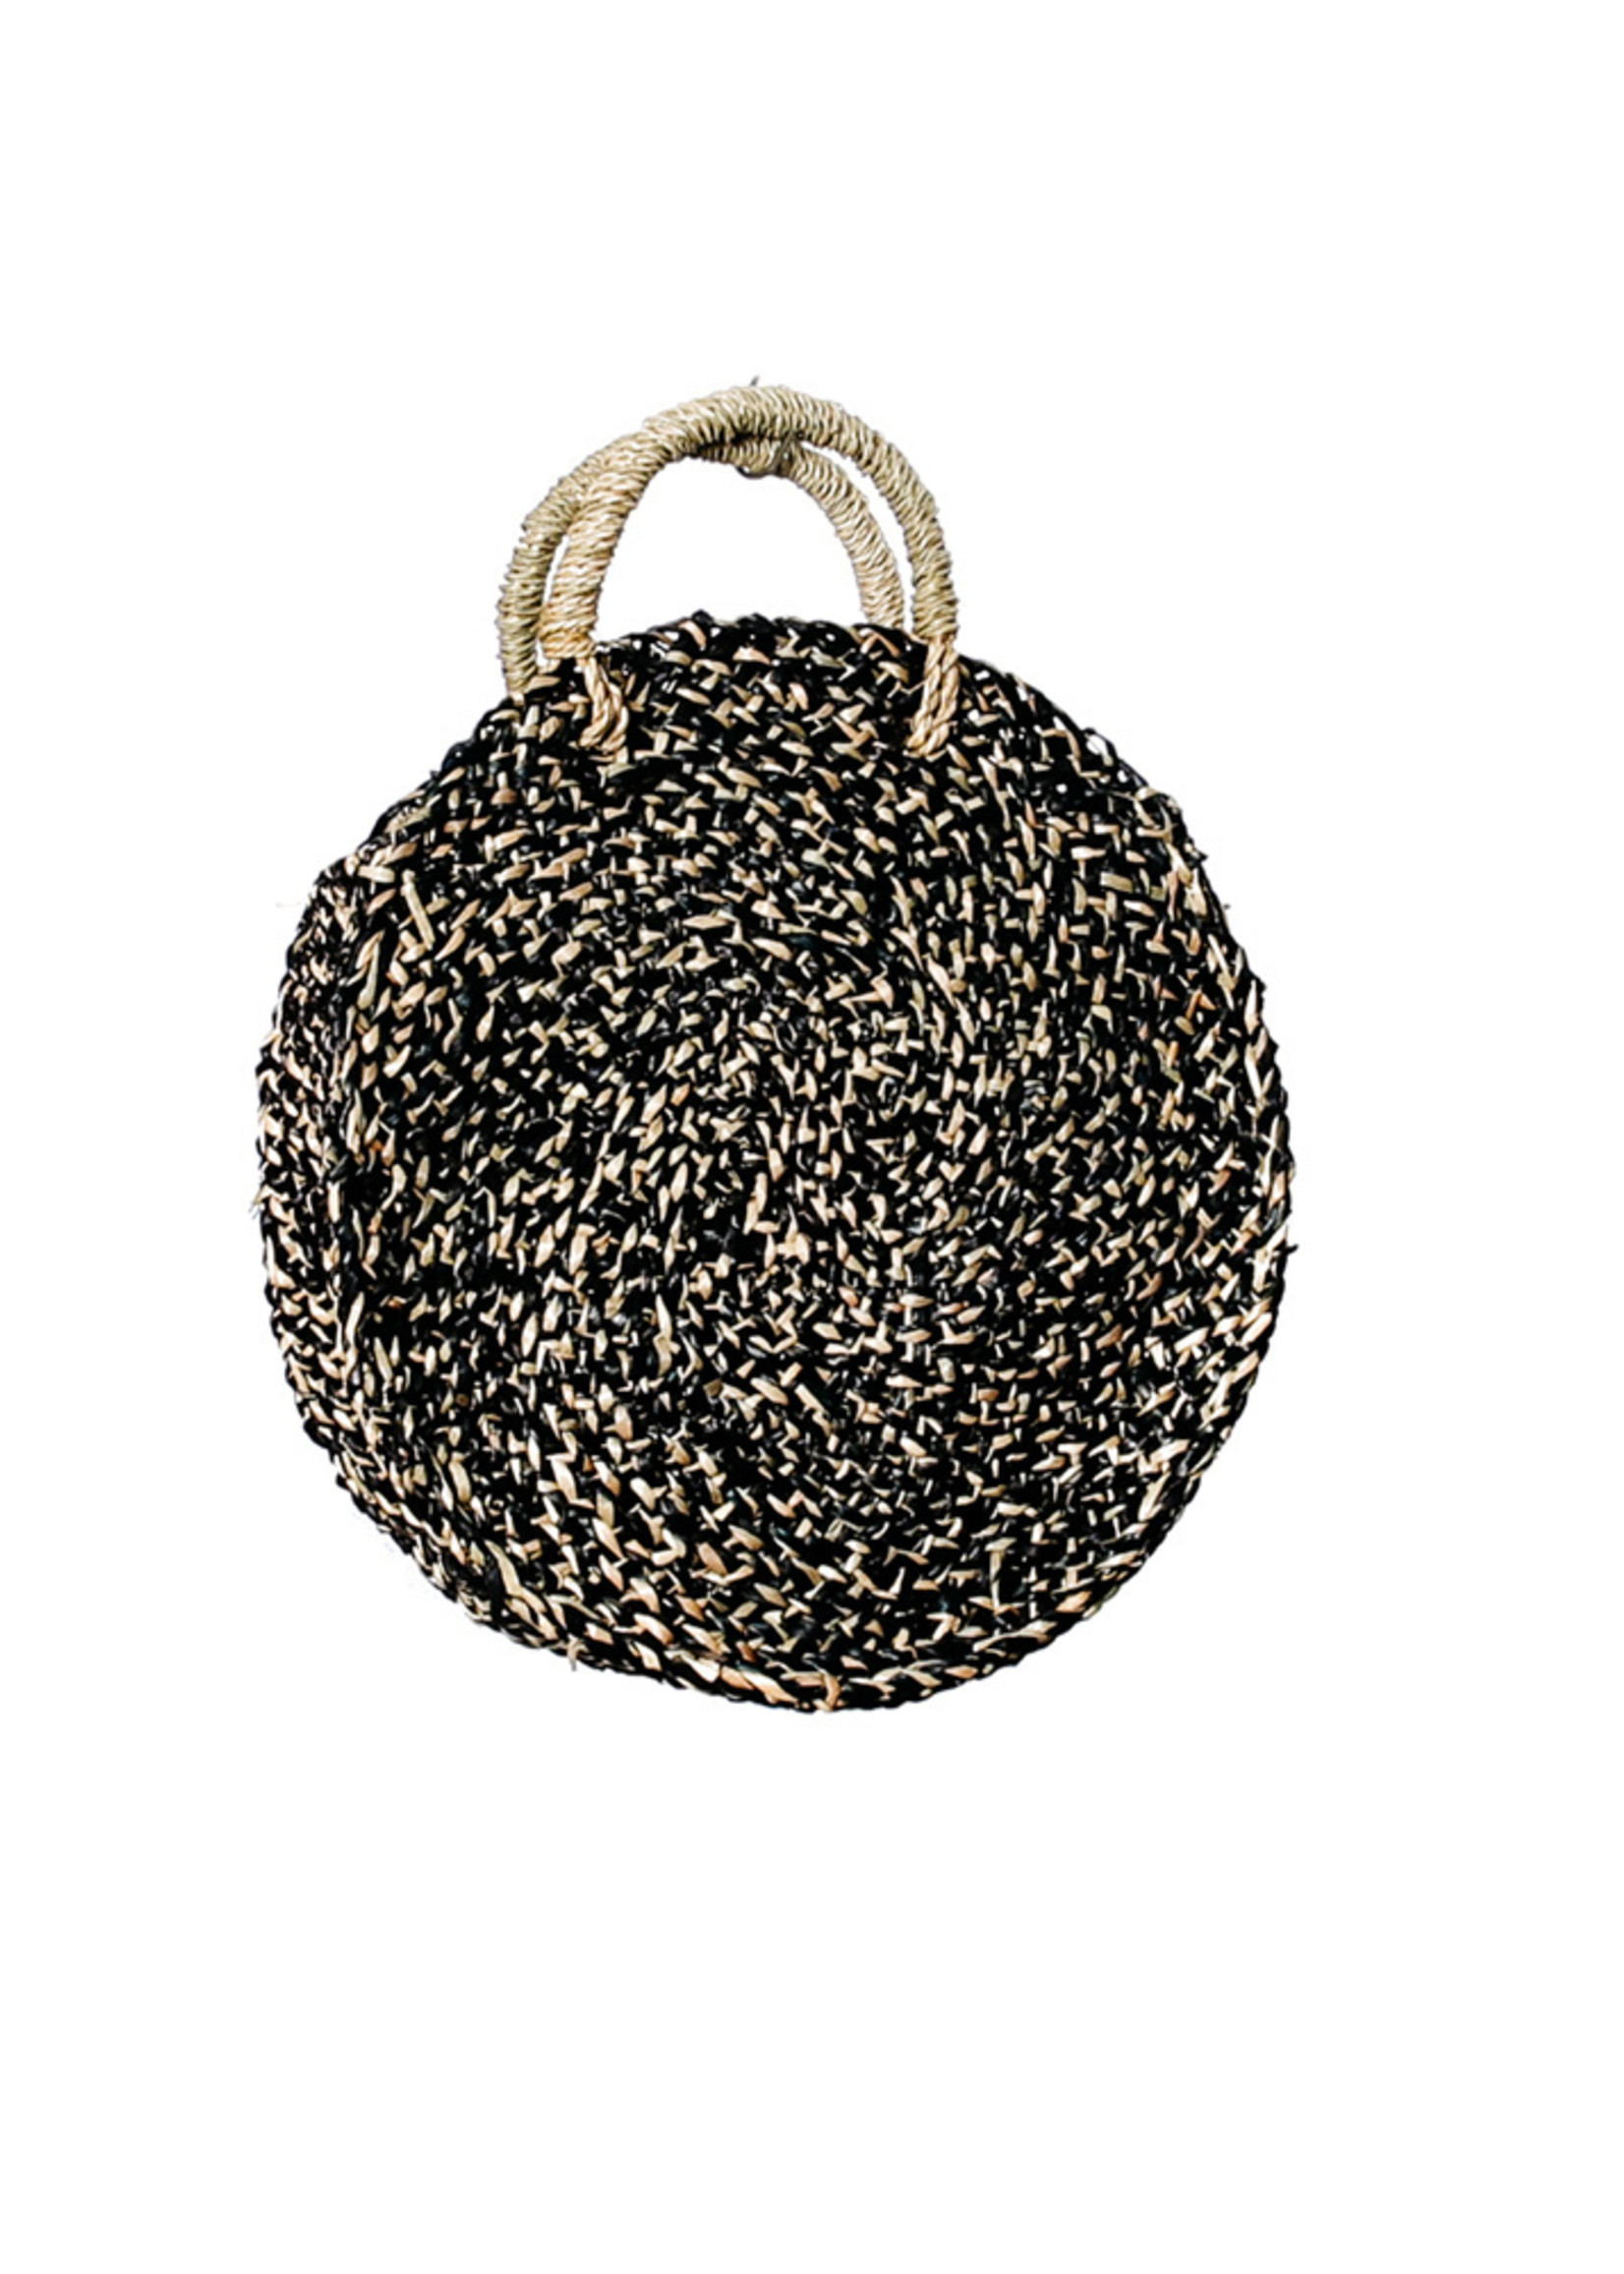 The Seagrass Spotted Roundi Bag  - Natural Black - S